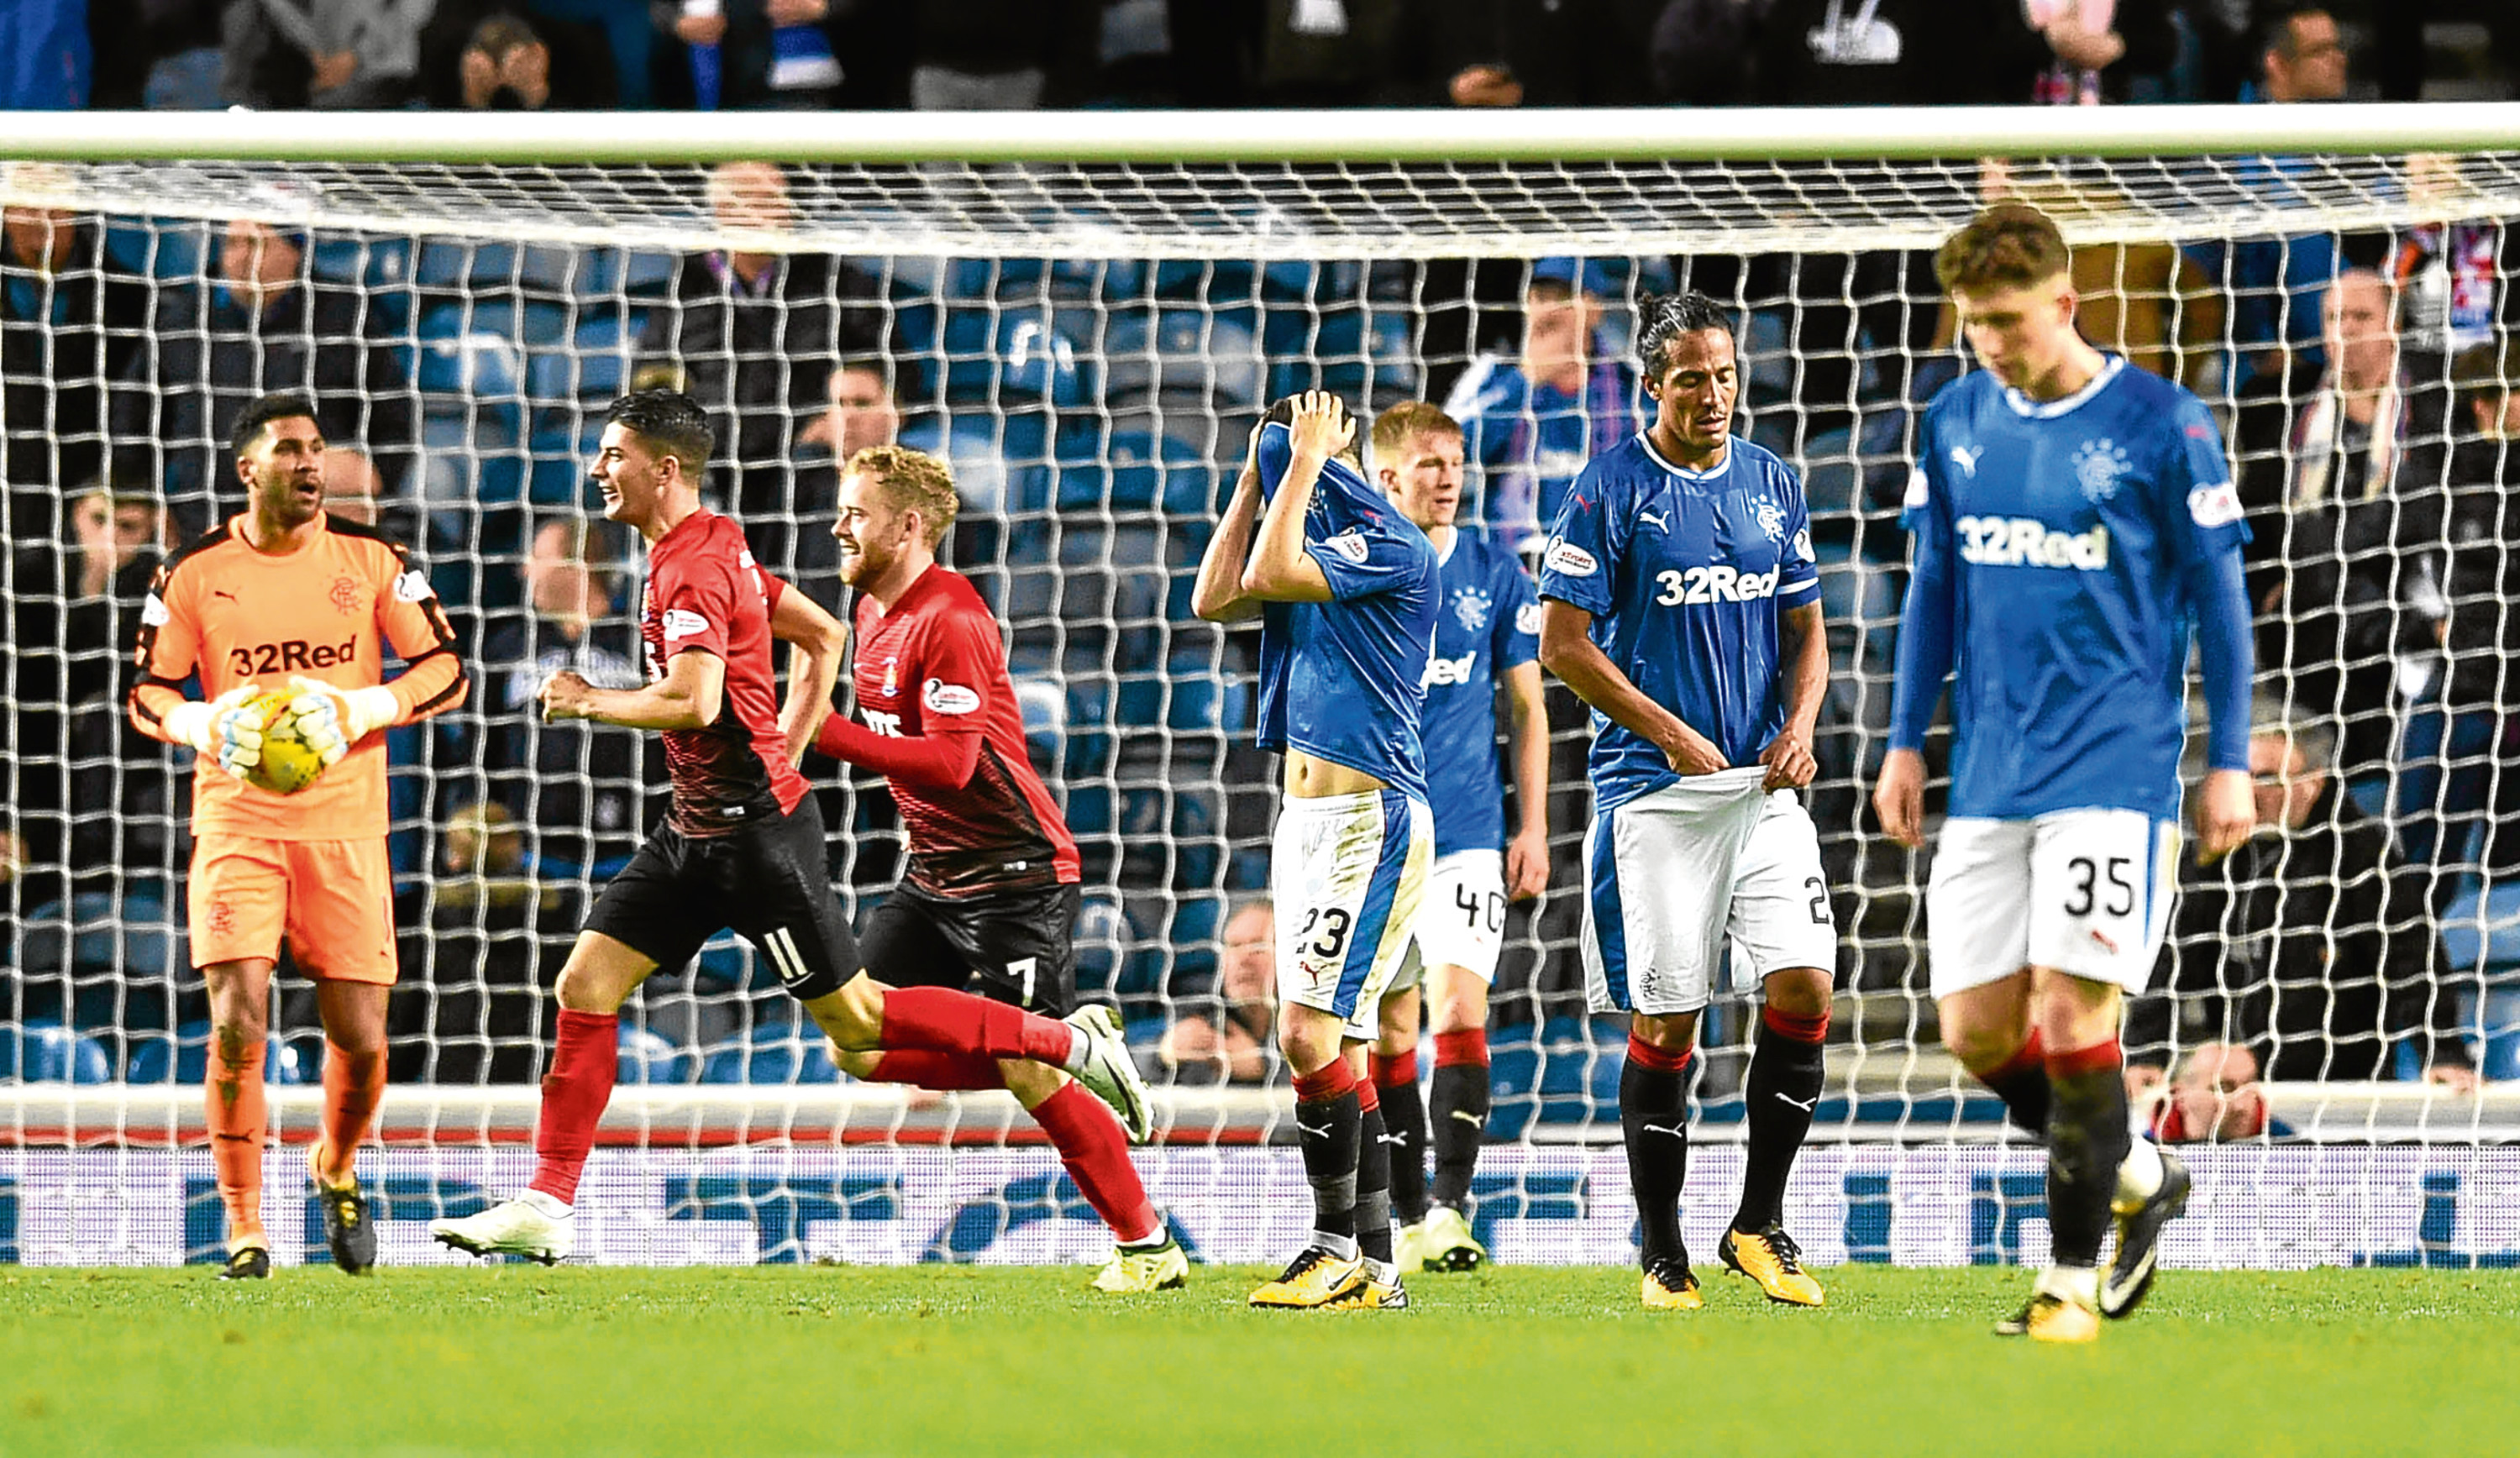 Rangers players left dejected after Kilmarnock's equaliser (SNS)